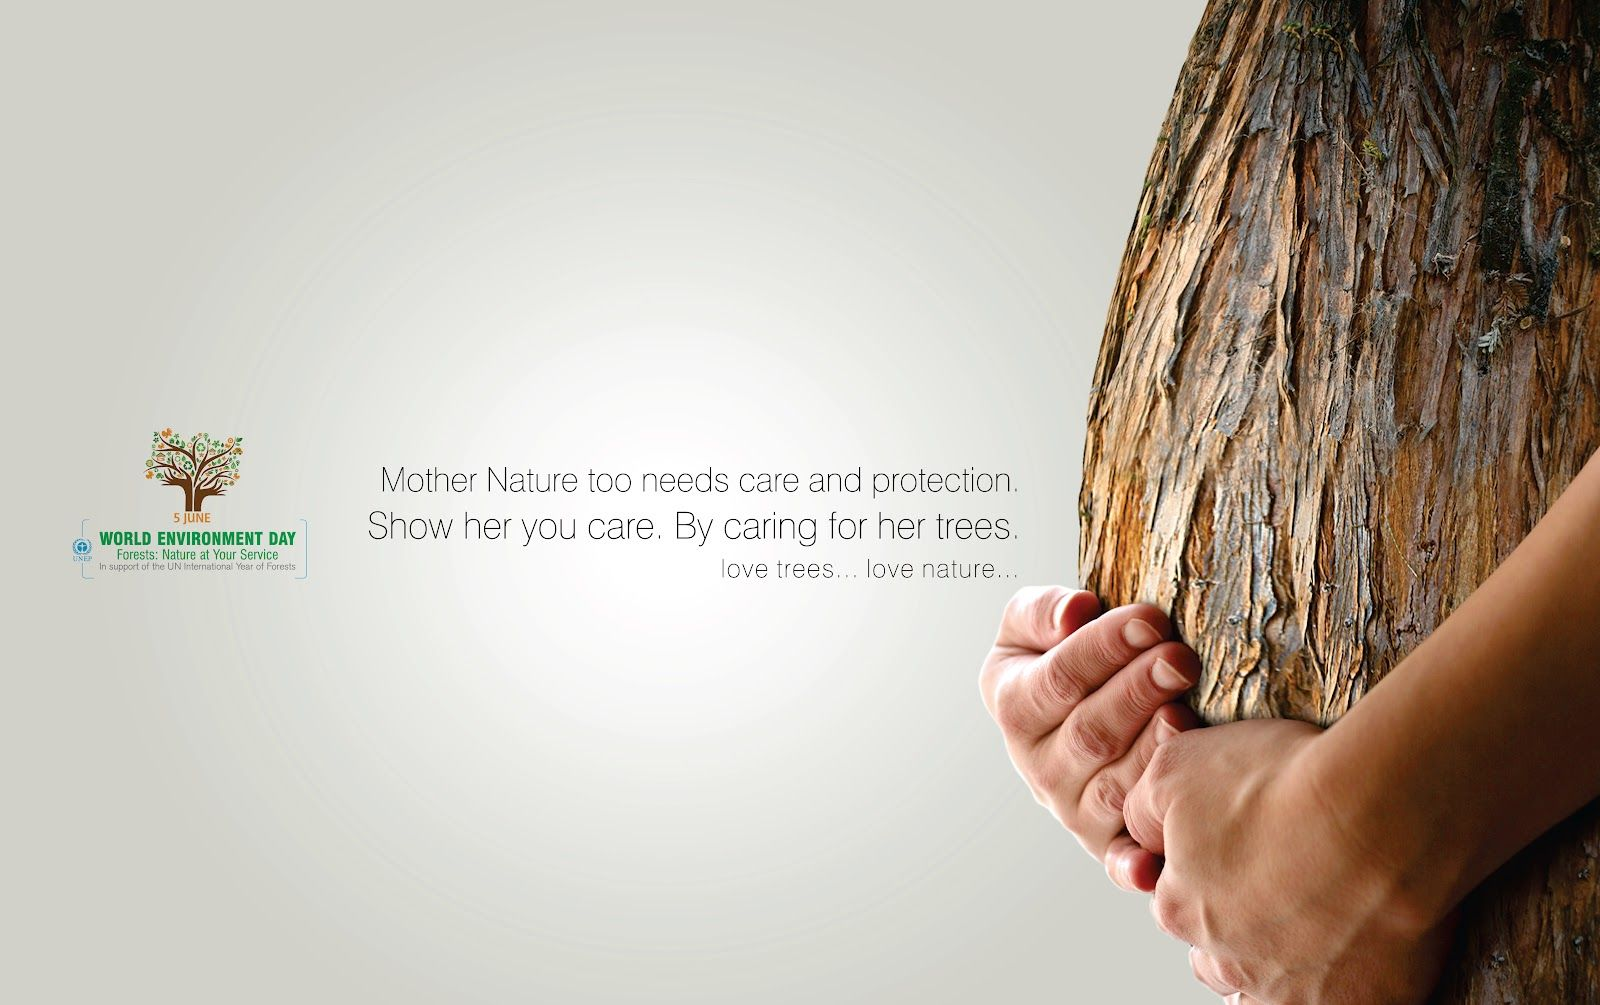 Save the world quotes quotesgram - Great Inspiring Website Http Quotesgram Net Natural Environment